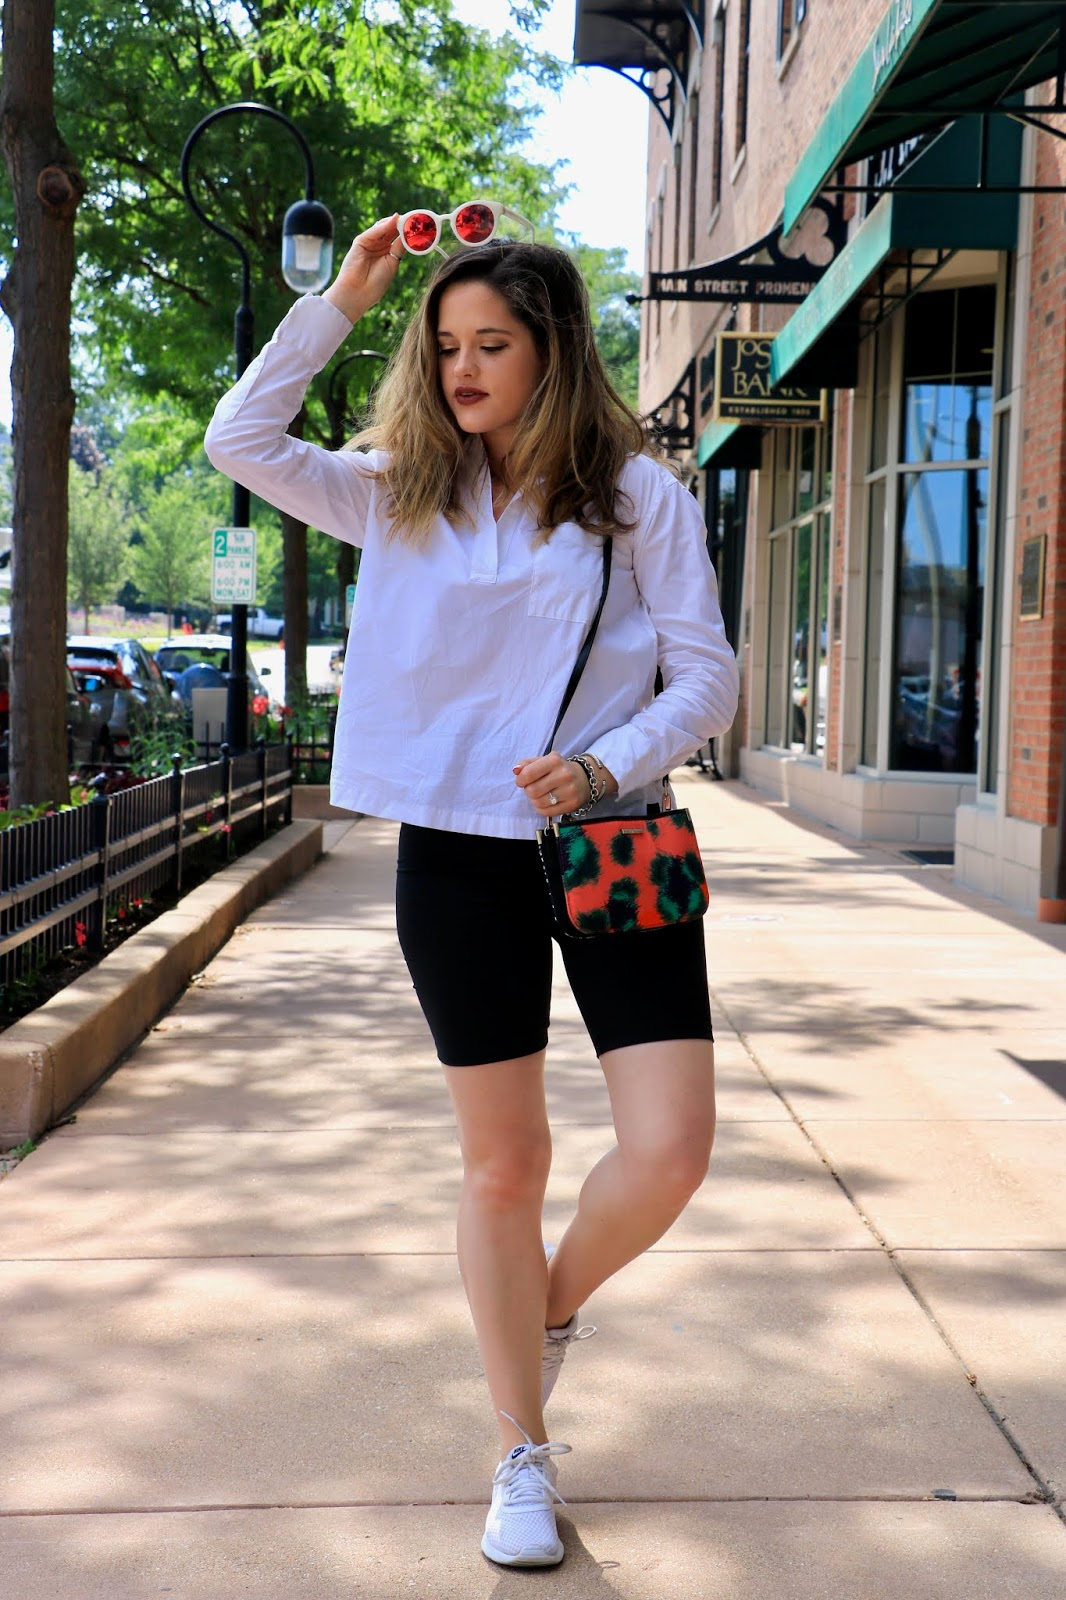 Nyc fashion blogger Kathleen Harper wearing an easy summer 2019 outfit of bike shorts and sneakers.